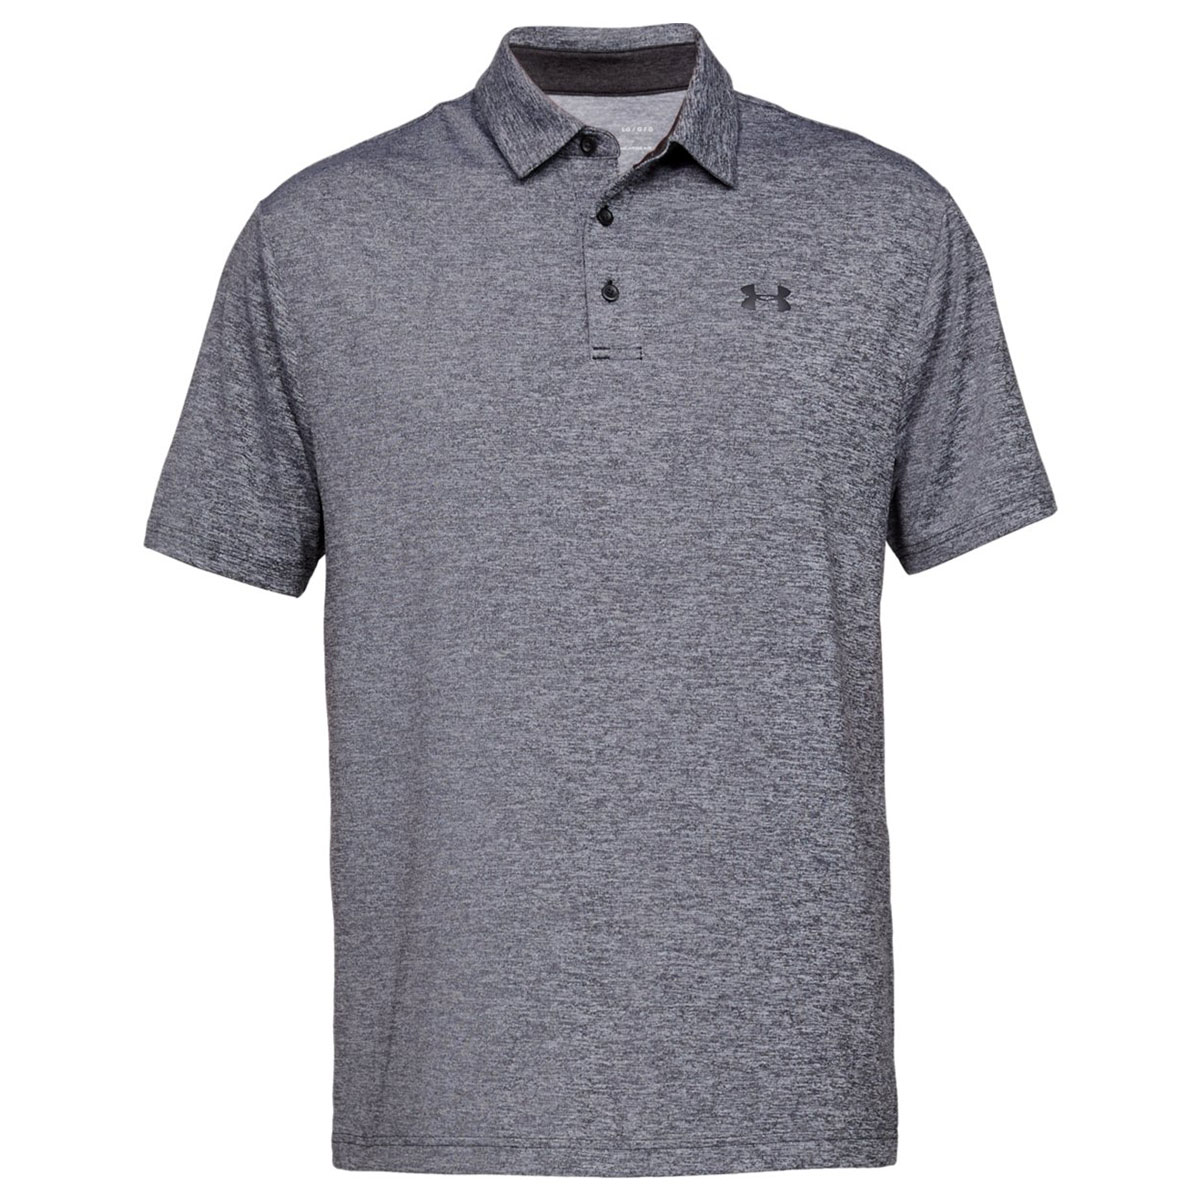 Under-Armour-Mens-2019-Playoff-Polo-2-0-Breathable-Light-Stretch-Polo-Shirt thumbnail 47